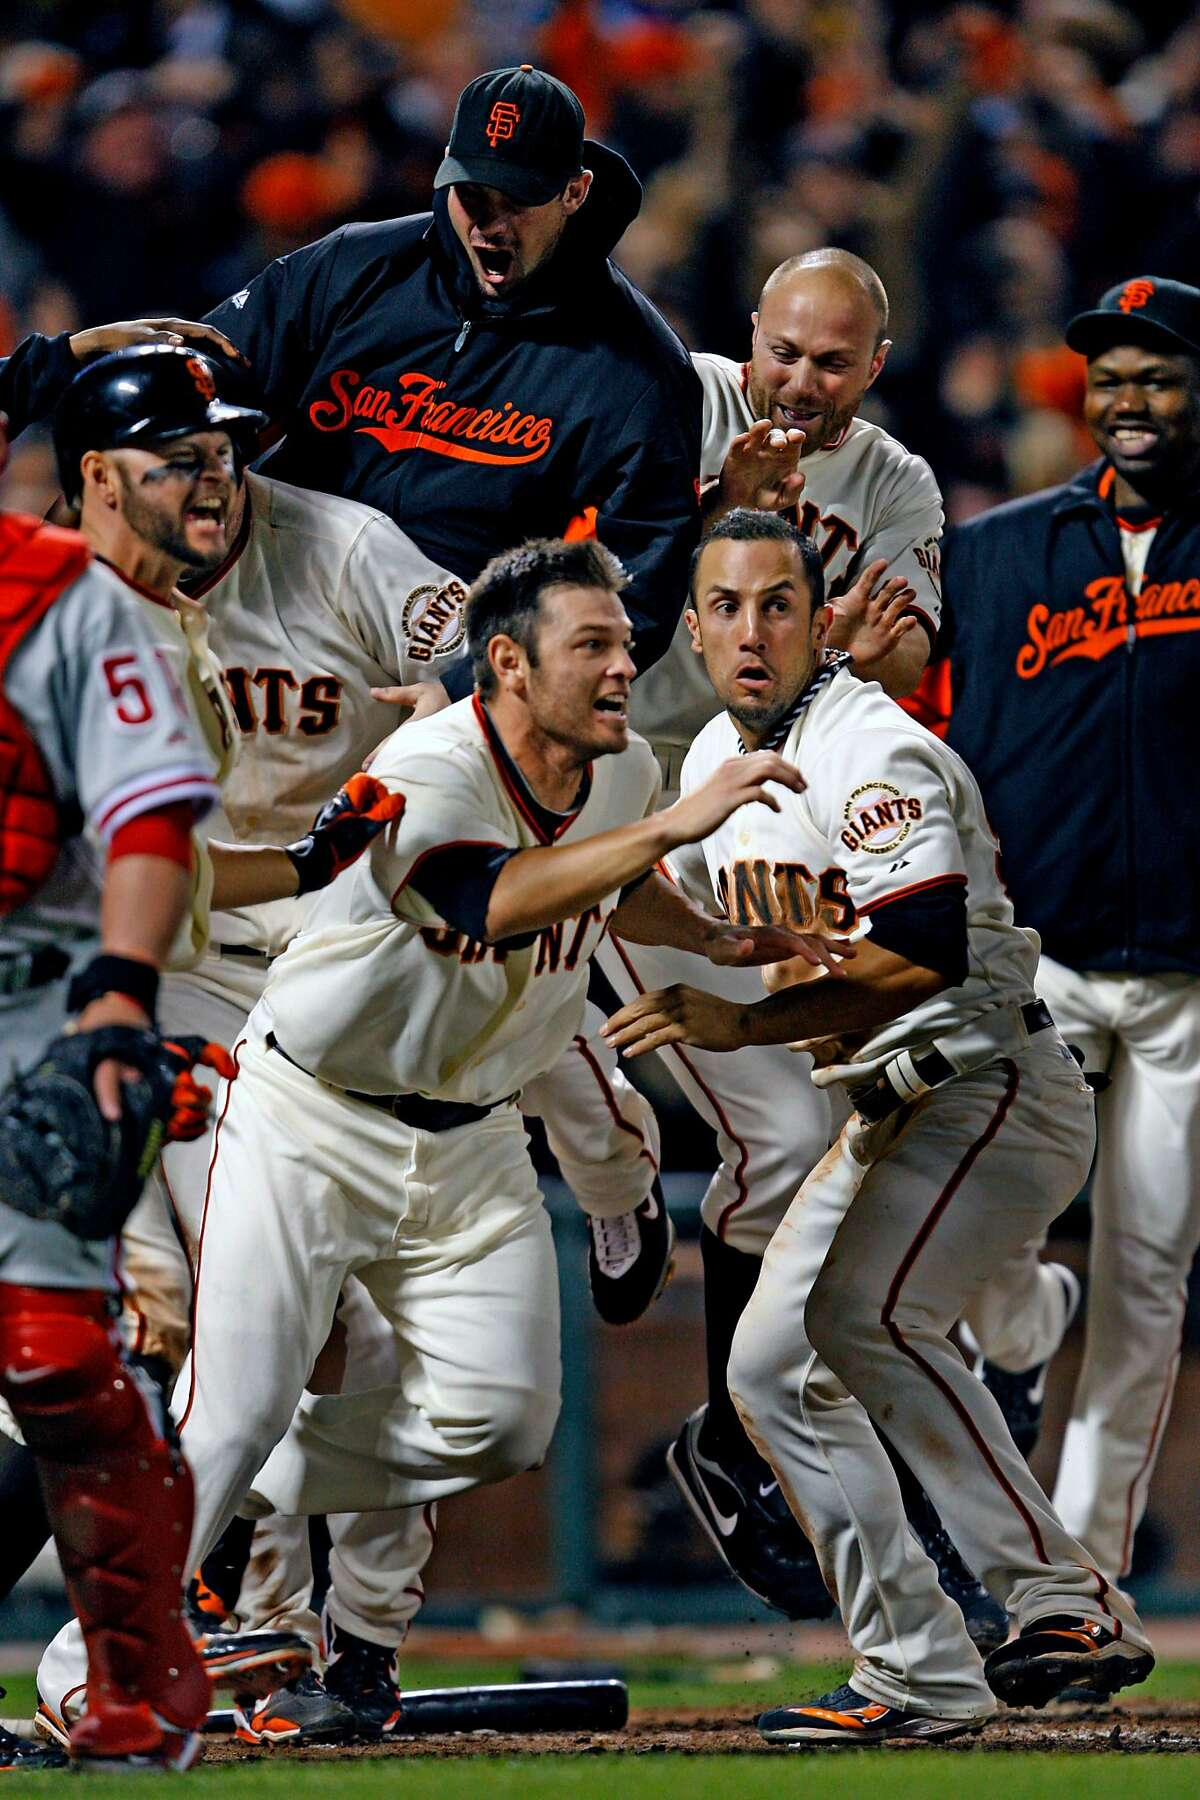 Giants players including Freddy Sanchez (center) celebrated the Giants victory. San Francisco Giants defeated the Philadelphia Phillies 6-5 on October 20, 2010 at AT&T park.